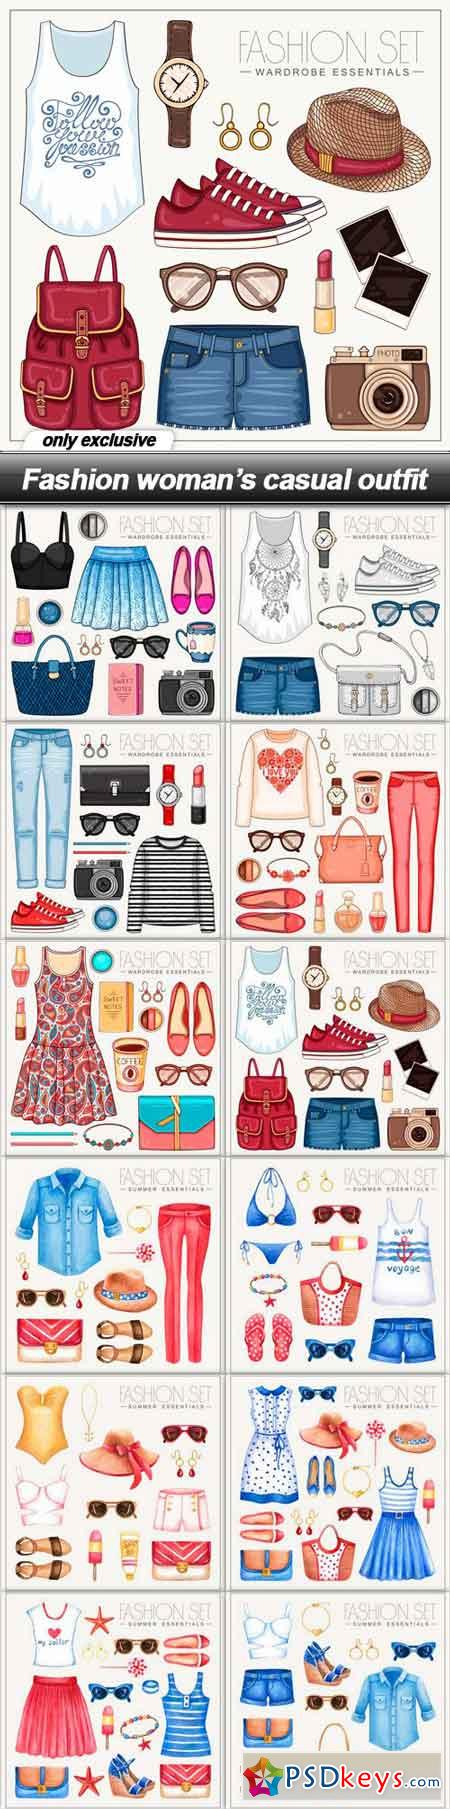 Fashion woman's casual outfit - 12 EPS